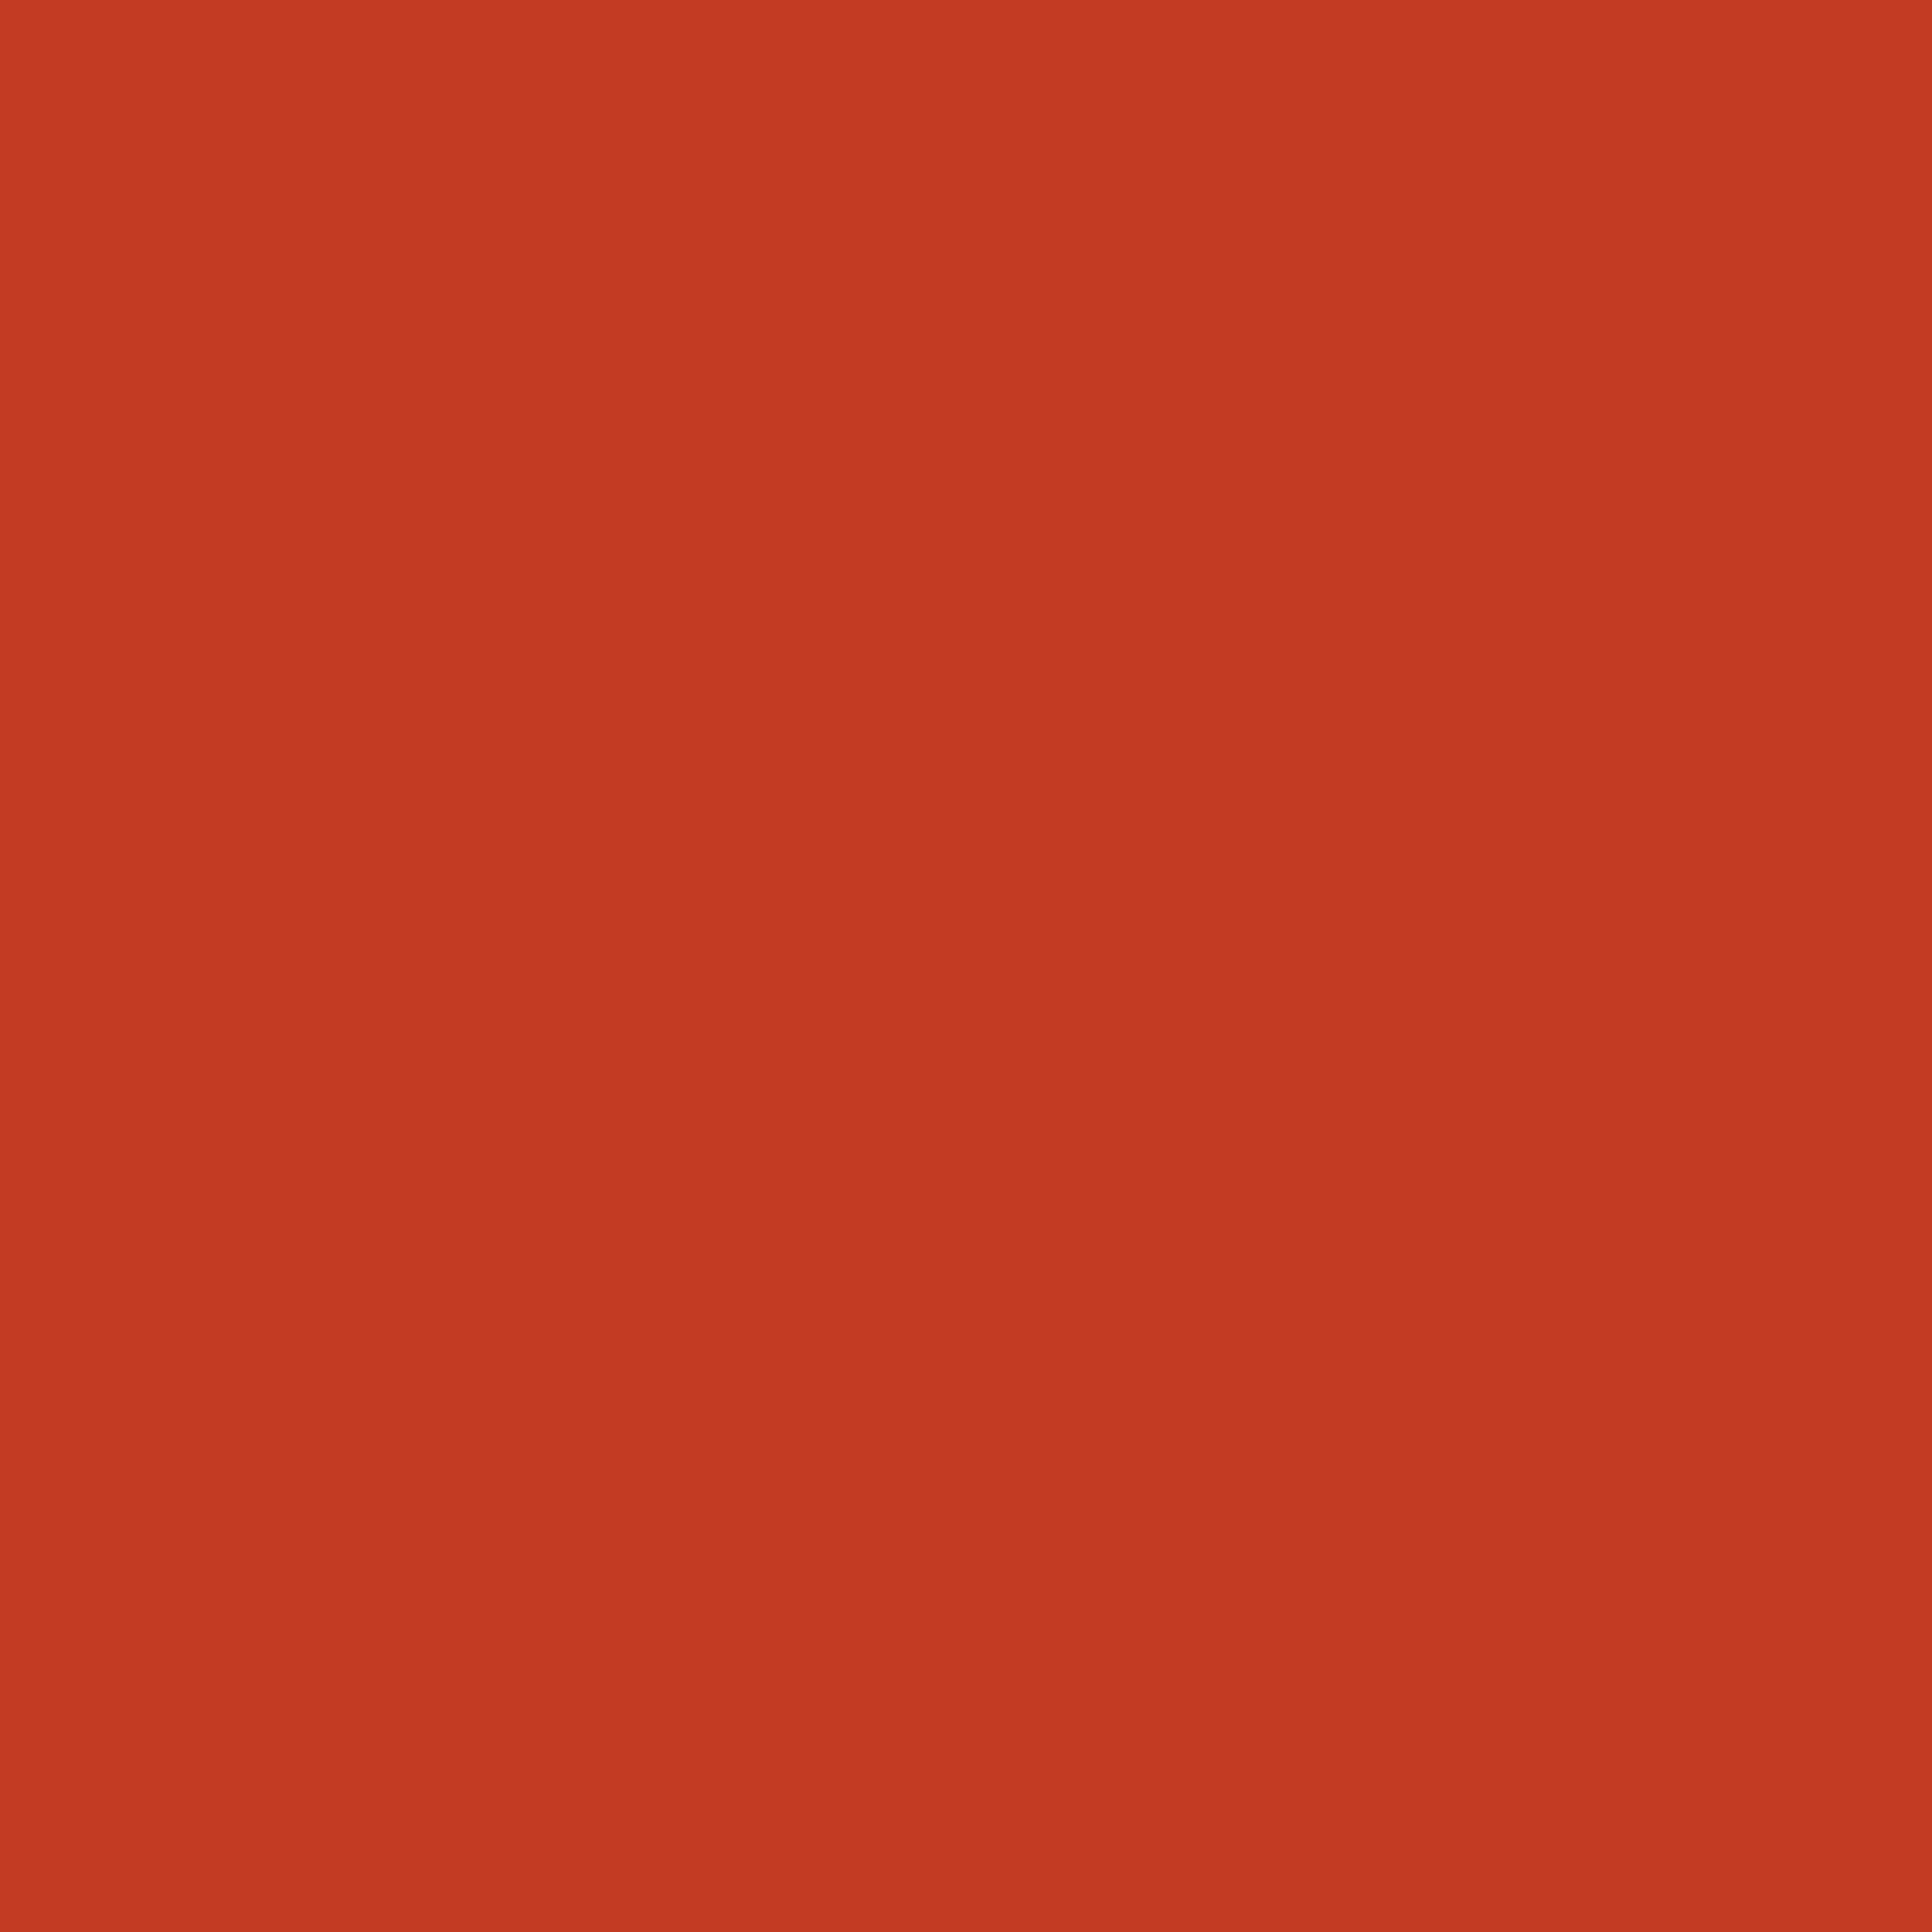 2732x2732 Dark Pastel Red Solid Color Background